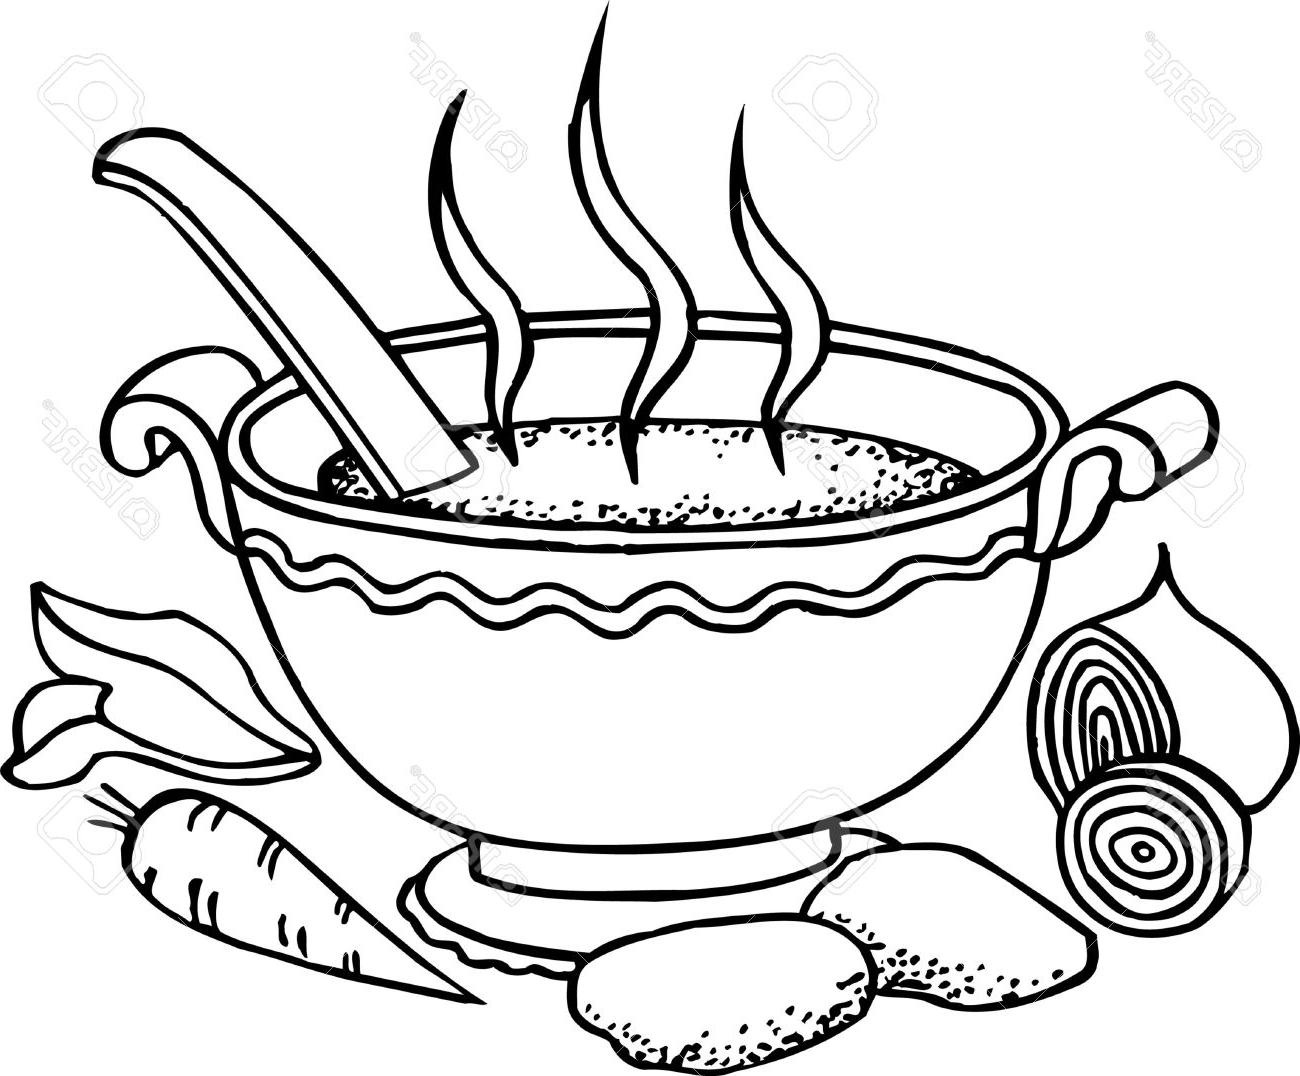 Hot soup clipart black and white 4 » Clipart Station.